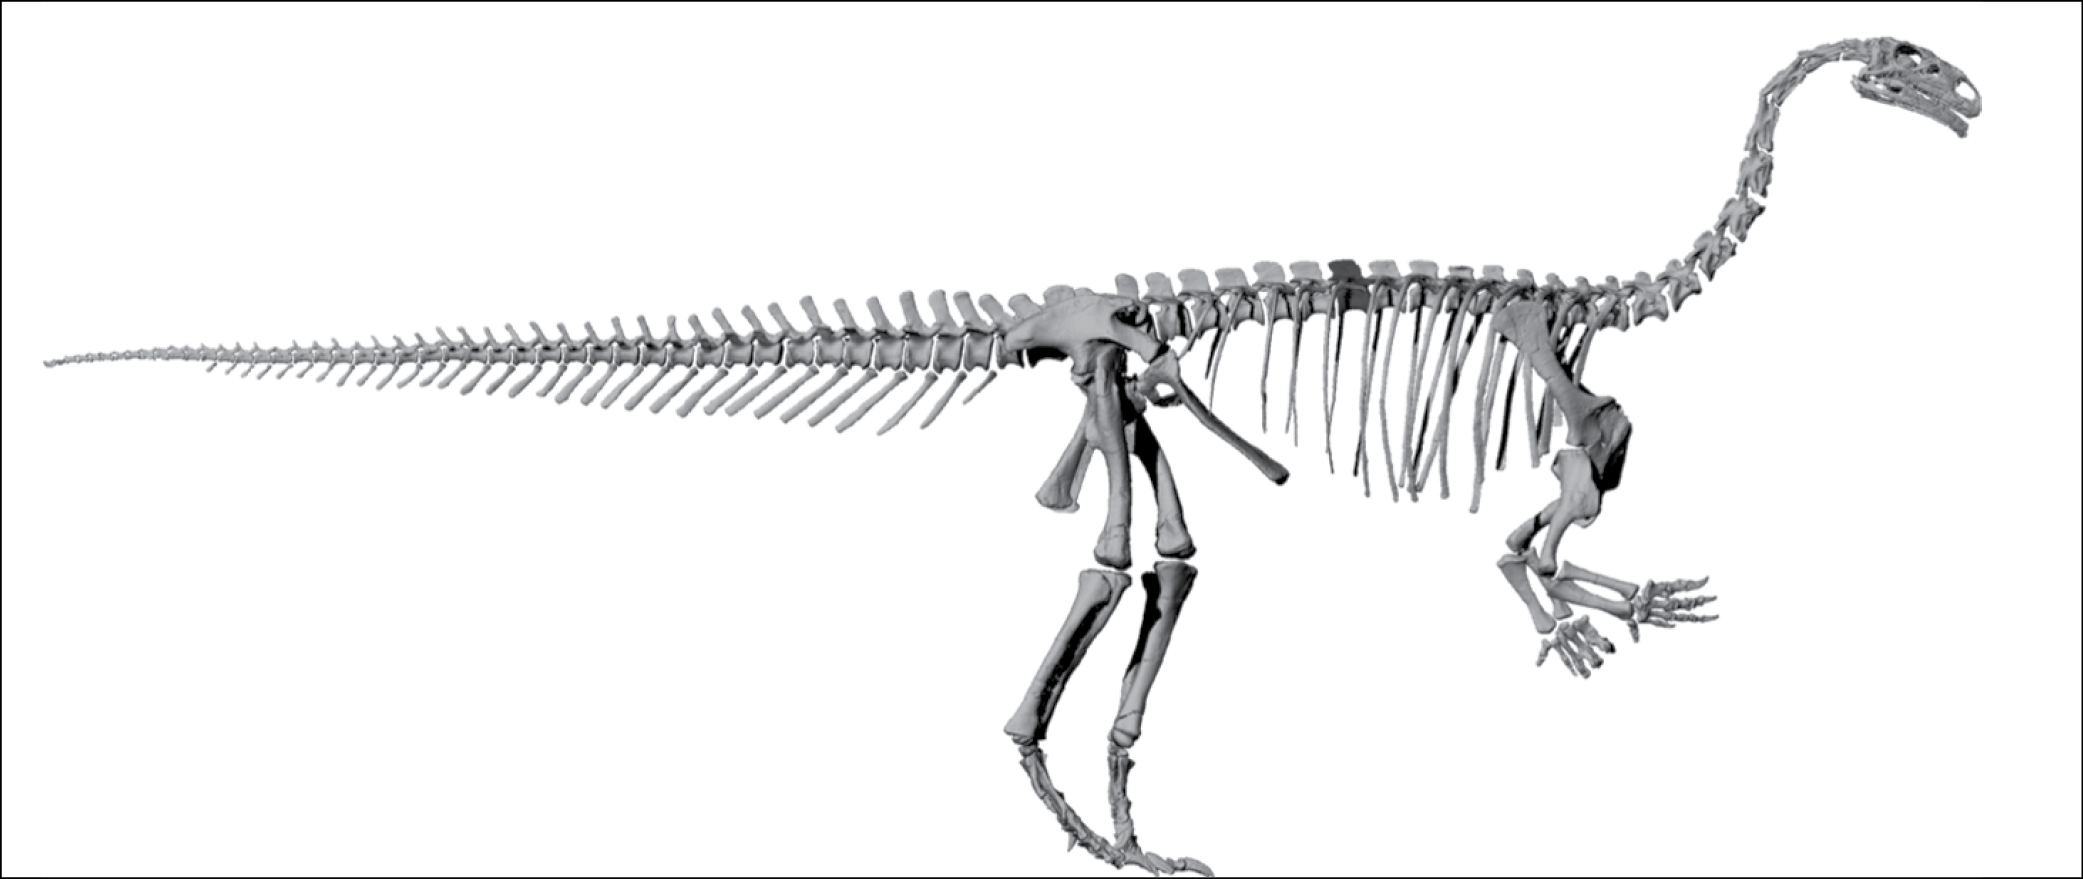 Illustration of Plateosaurus skeleton